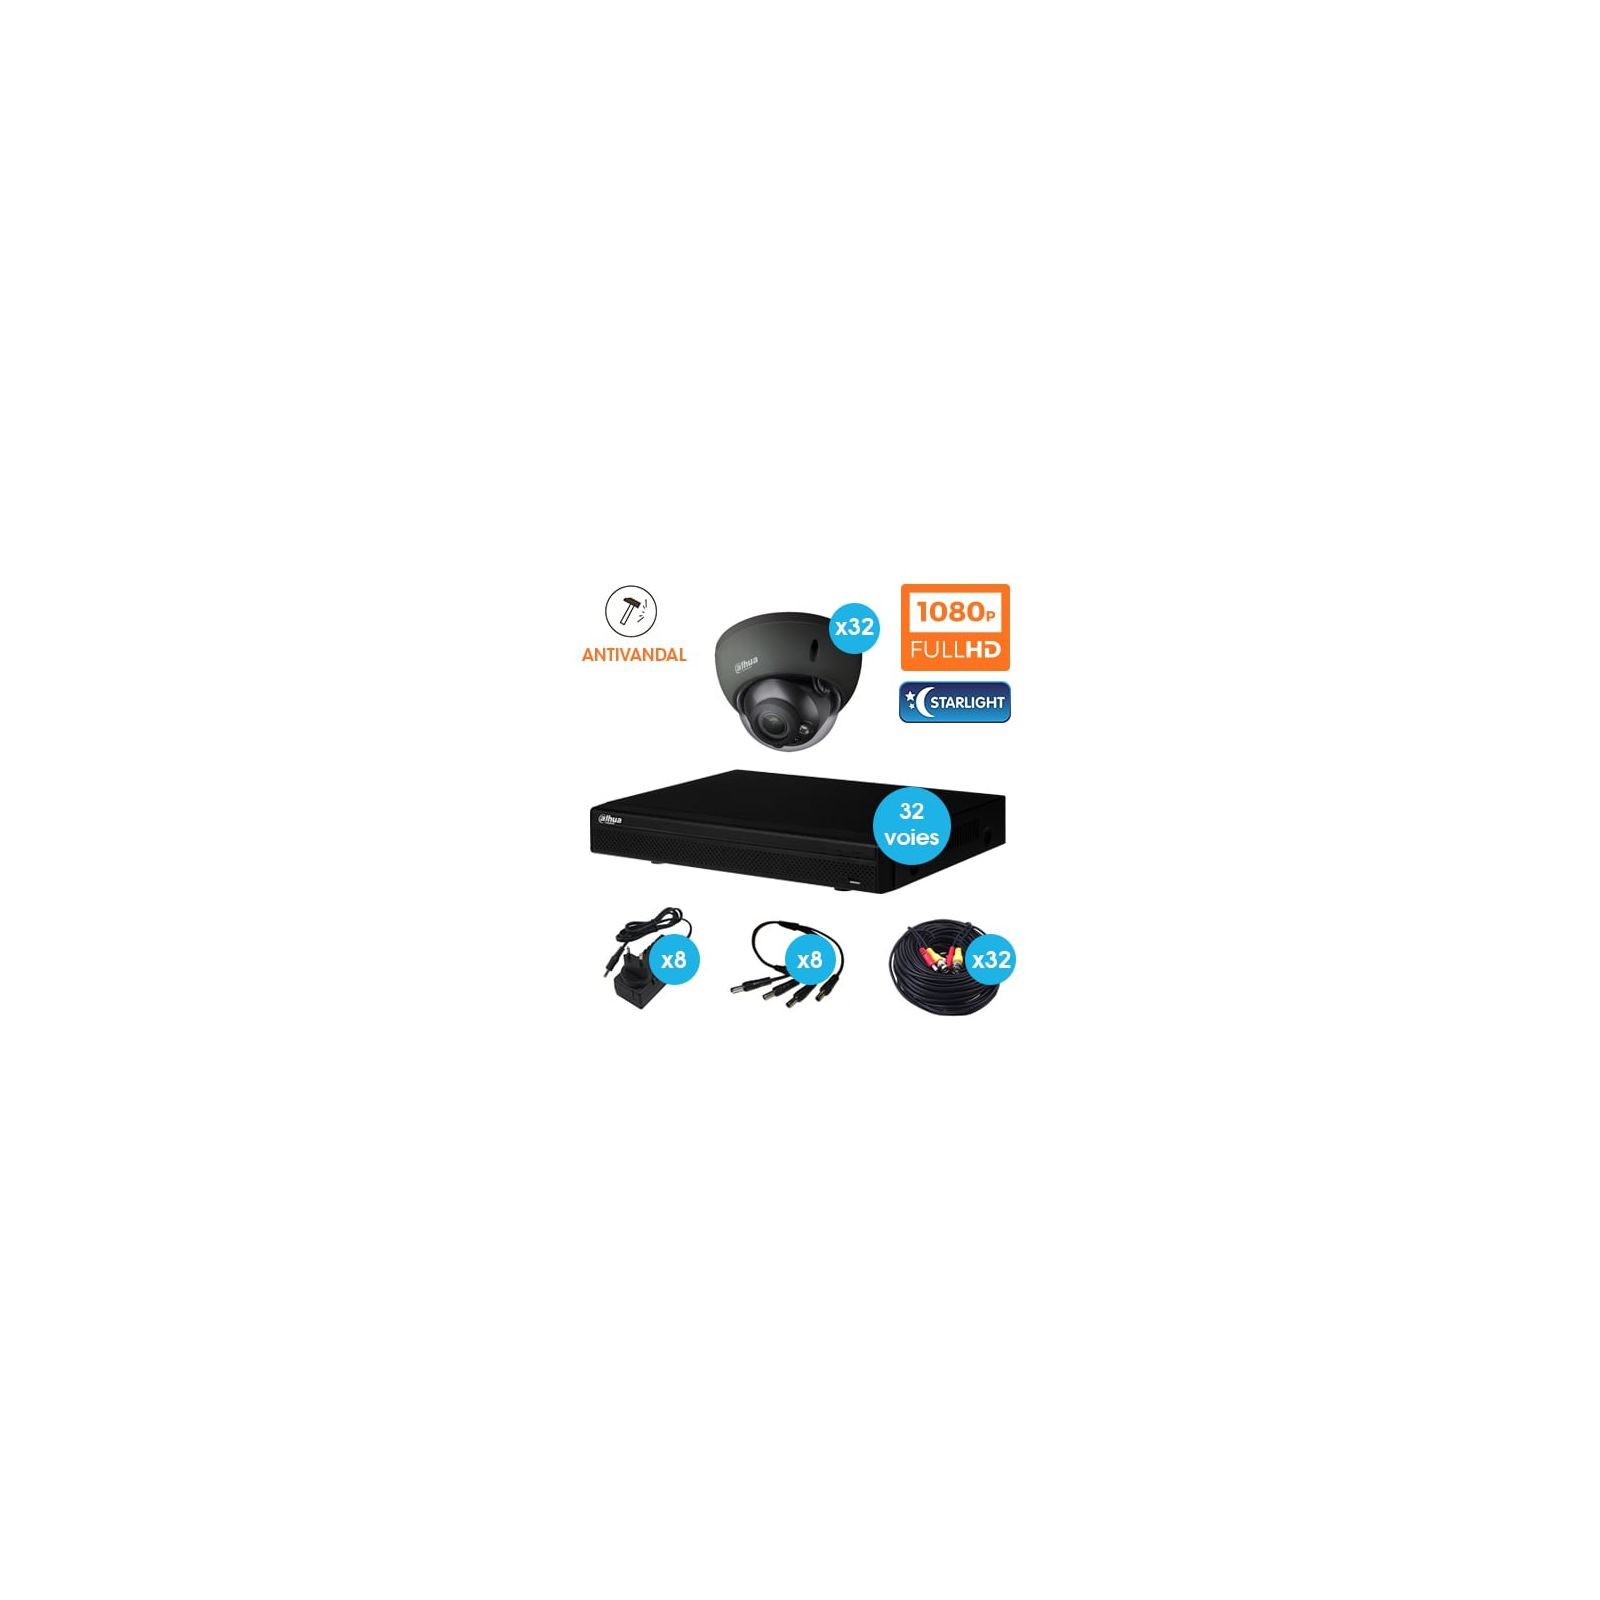 KIT VIDEOSURVEILLANCE DAHUA 32 CAMERAS DOME ANTIVANDAL HDCVI 1080 P DARK GREY OPTIQUE MOTORISE